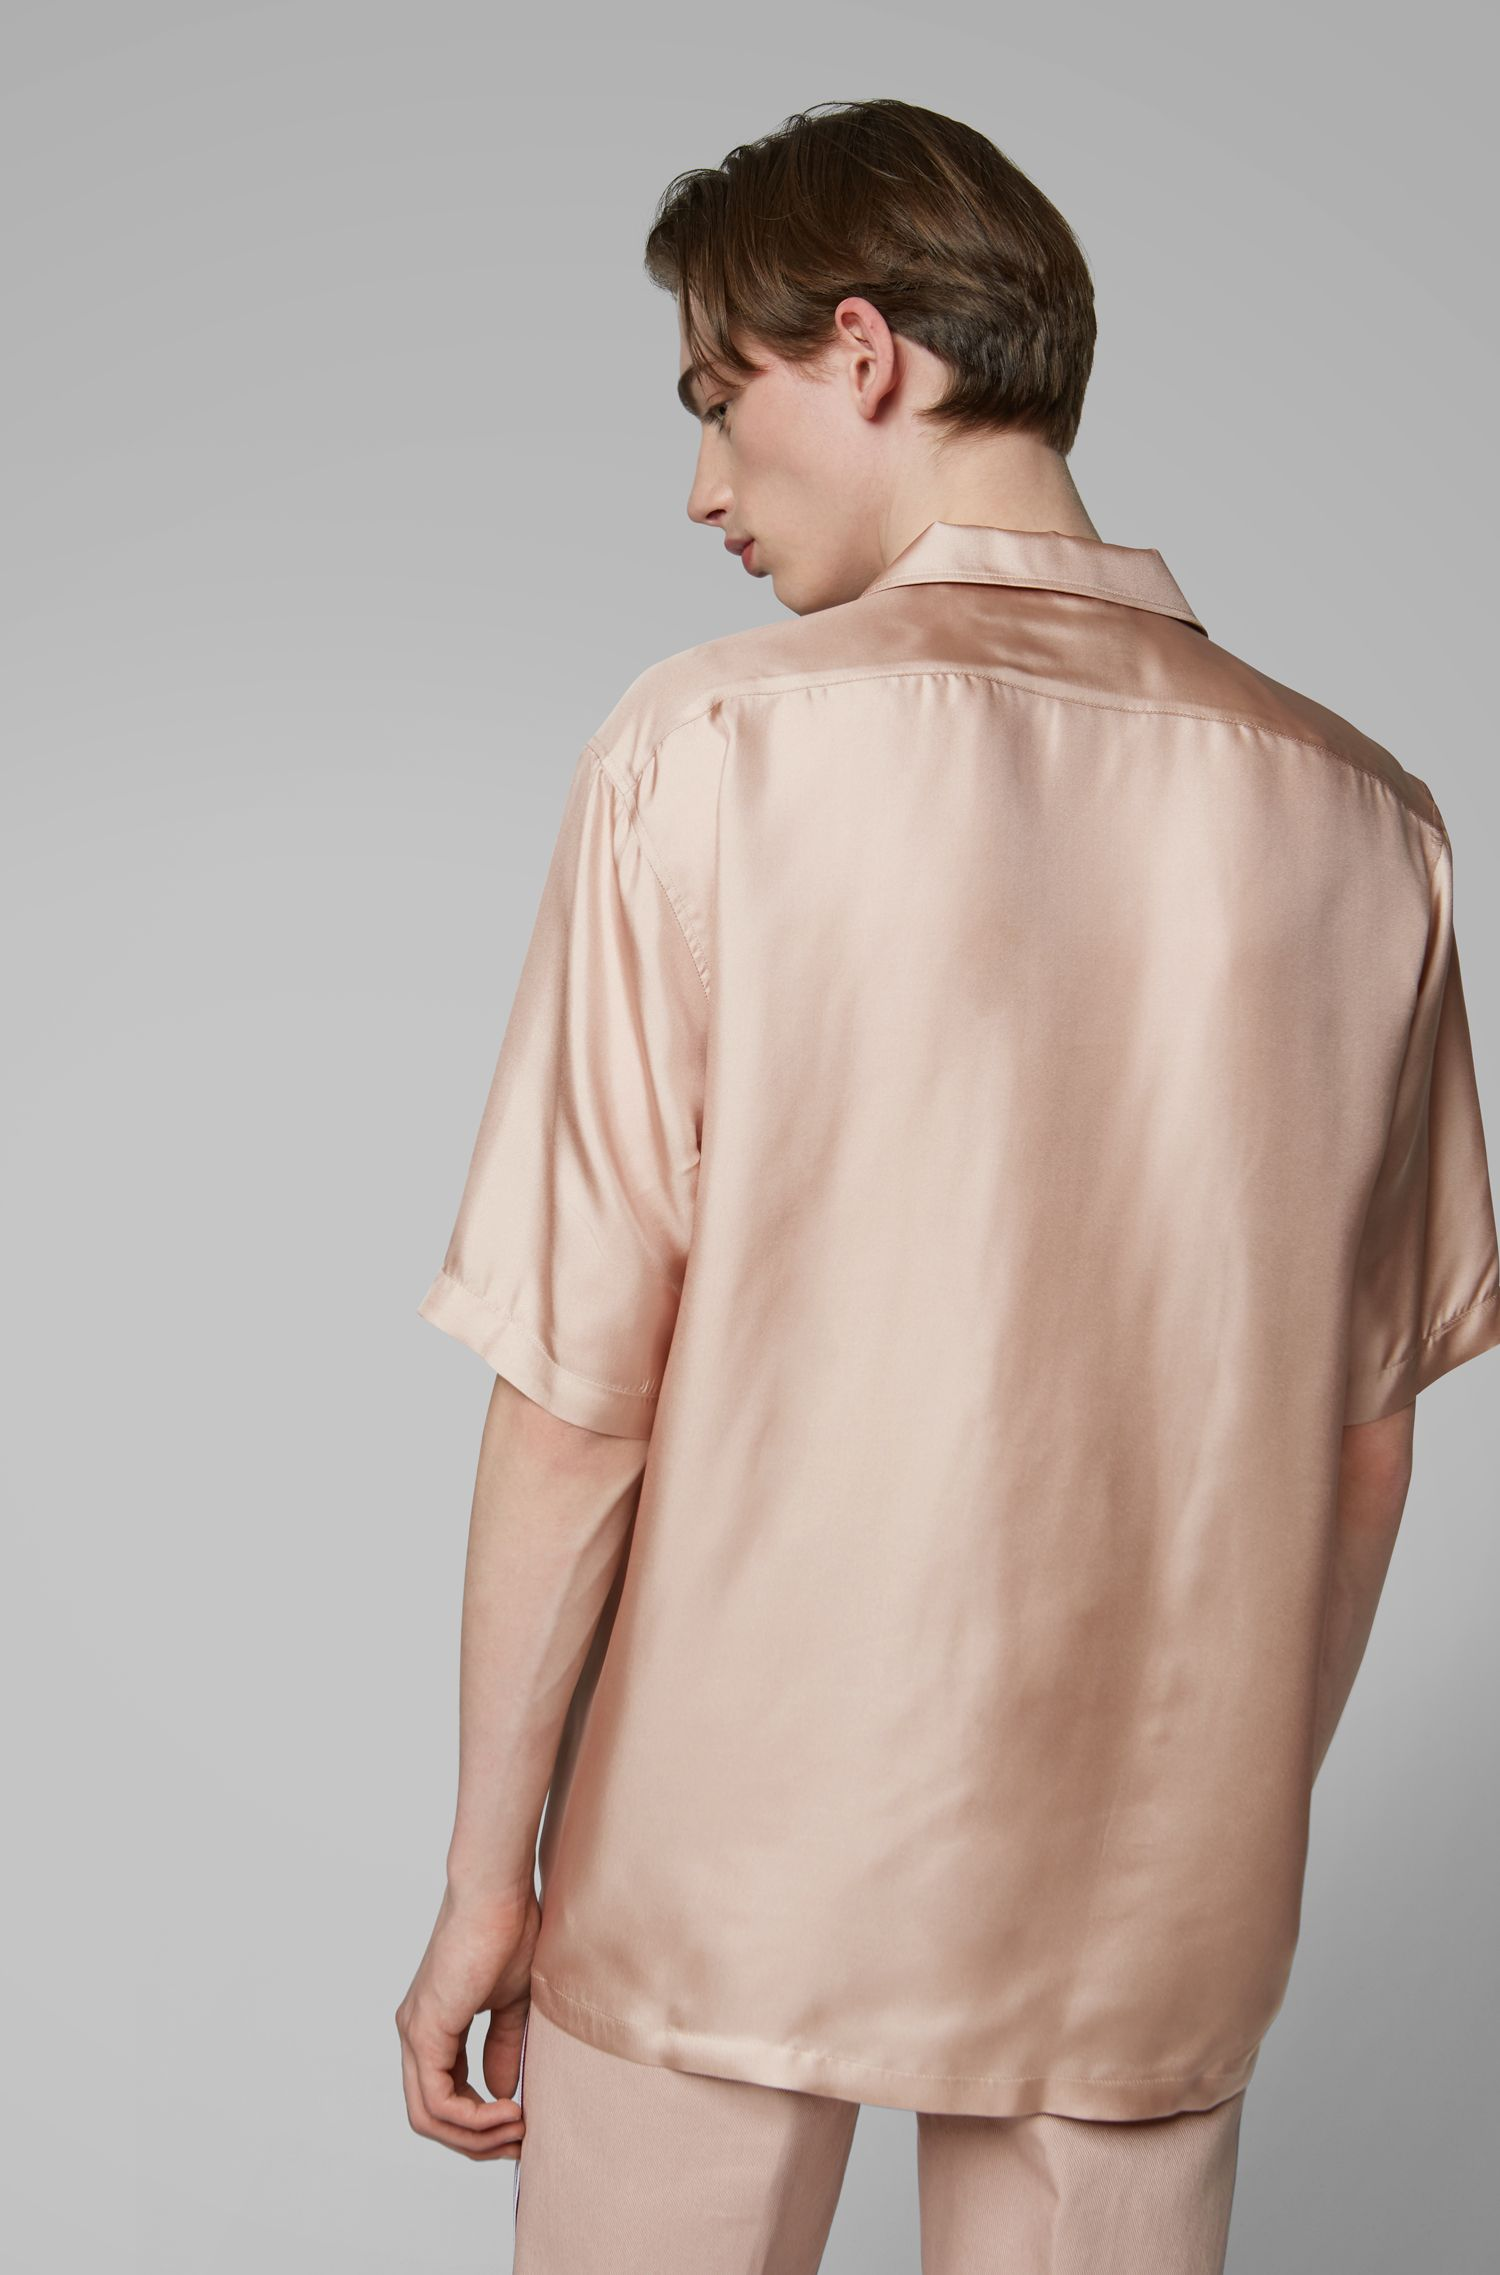 Fashion Show relaxed-fit silk shirt with camp collar, light pink